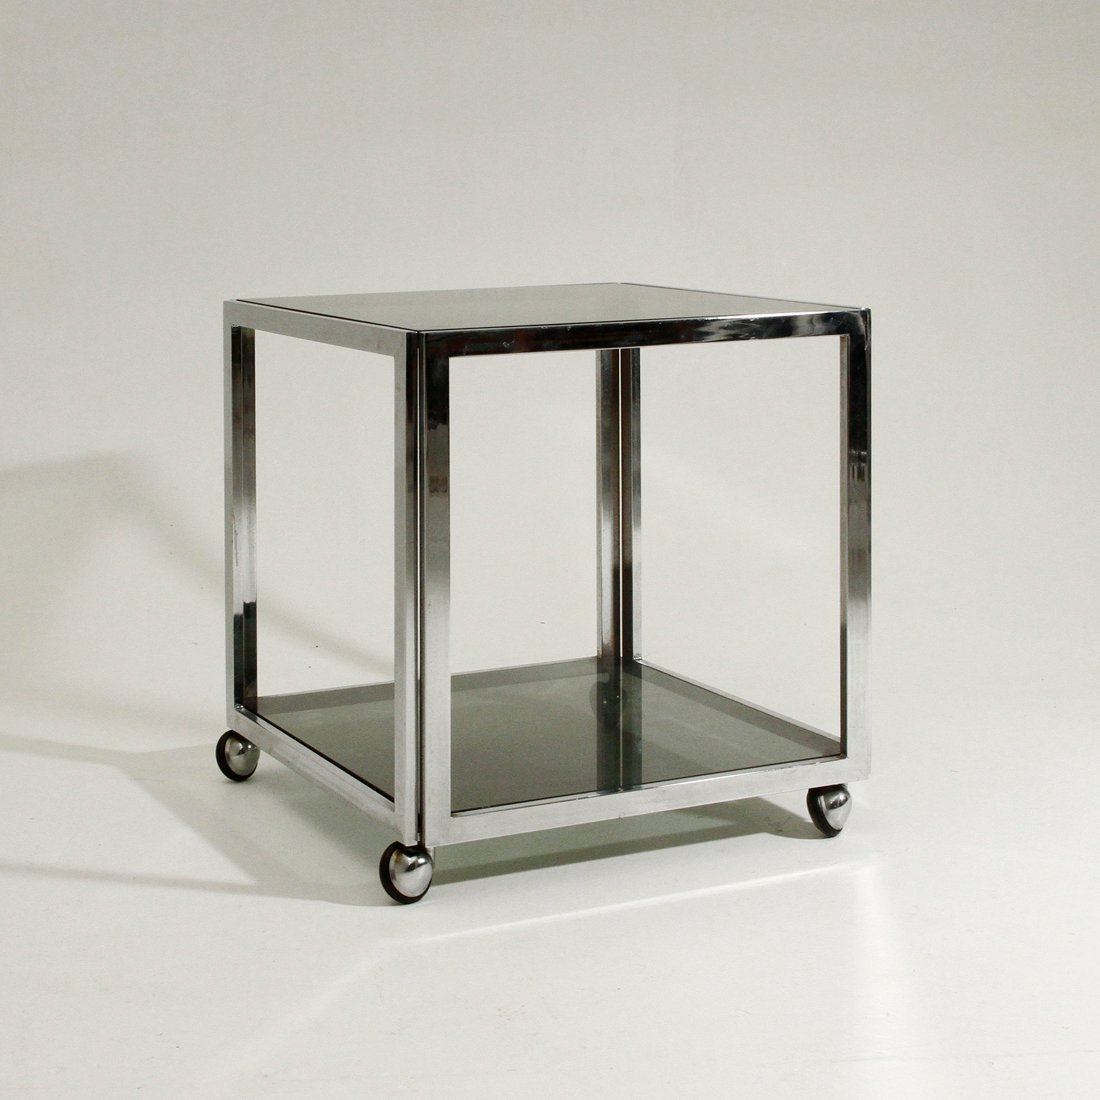 vintage chromed metal side table on wheels 1970s 1